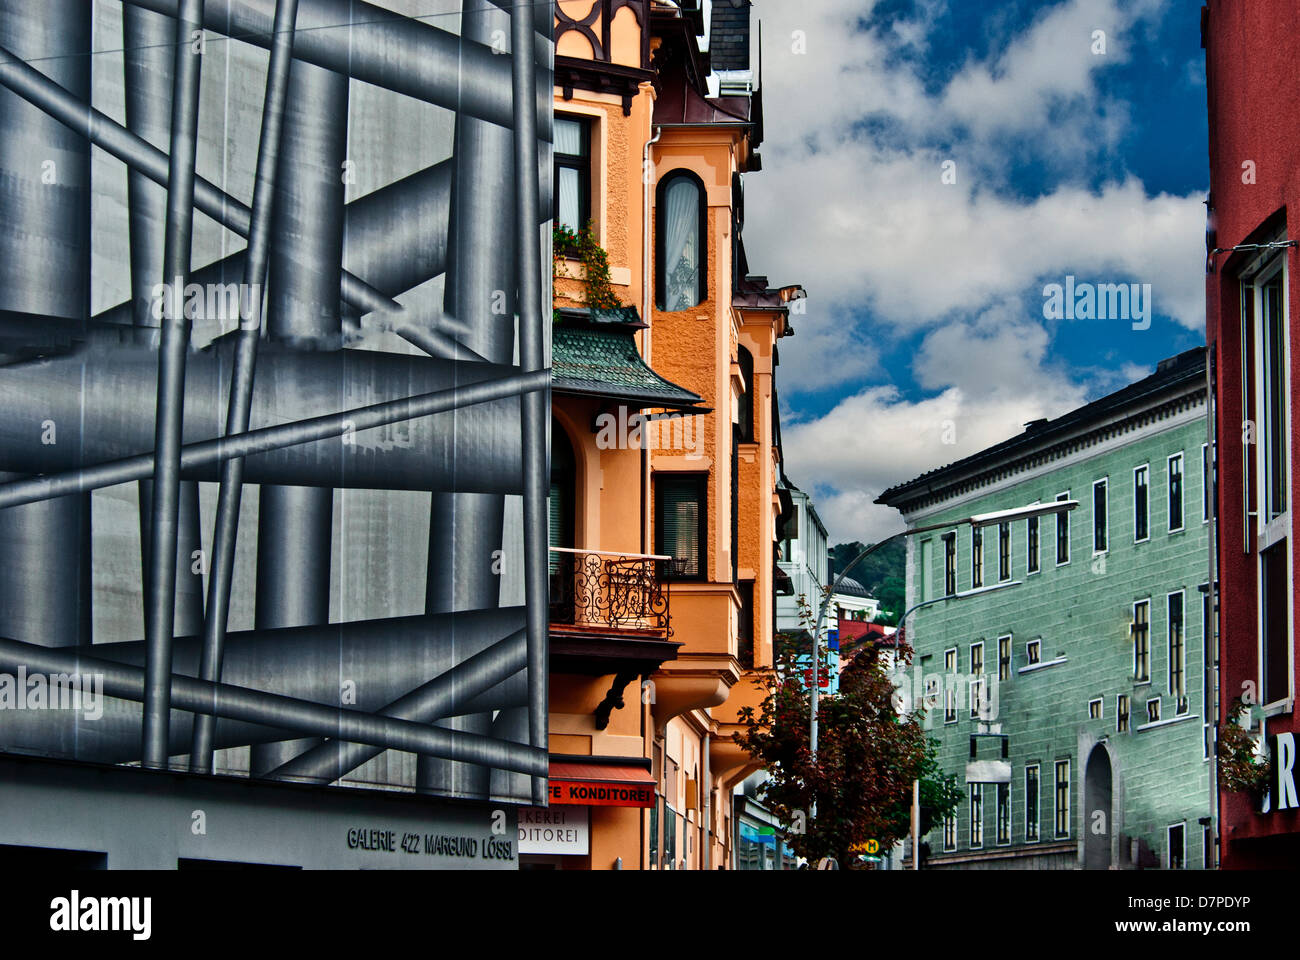 Building covered for renovation, Munich, Bavaria, Germany - Stock Image